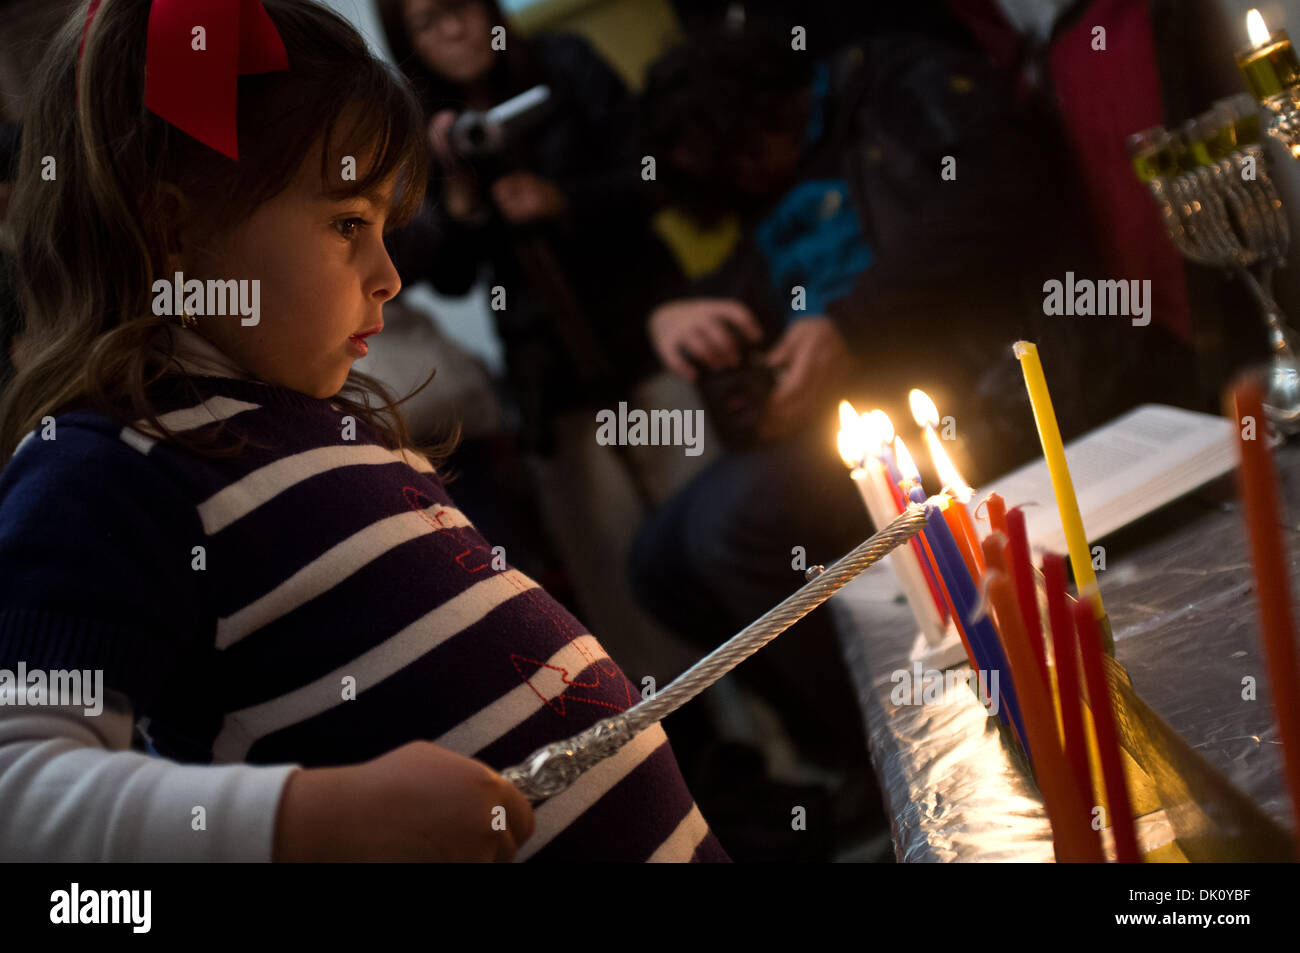 Sanhedria, Jerusalem, Israel. 1st Dec 2013. A young girl lights five candles on the eight-branched menorah with her family, belonging to the Breslov Hassidic, ultra-Orthodox community, in her home in the Orthodox neighborhood of Sanhedria. Jerusalem, Israel. 1-Dec-2013.   The Breslov Hassidic, ultra-Orthodox, Yeruslavski family, light five candles on the eight-branched menorah celebrating the fifth night of Hanukkah, commemorating the oil lamp that miraculously burned for eight days in the destroyed Temple in 164 BCE. Credit:  Nir Alon/Alamy Live News - Stock Image